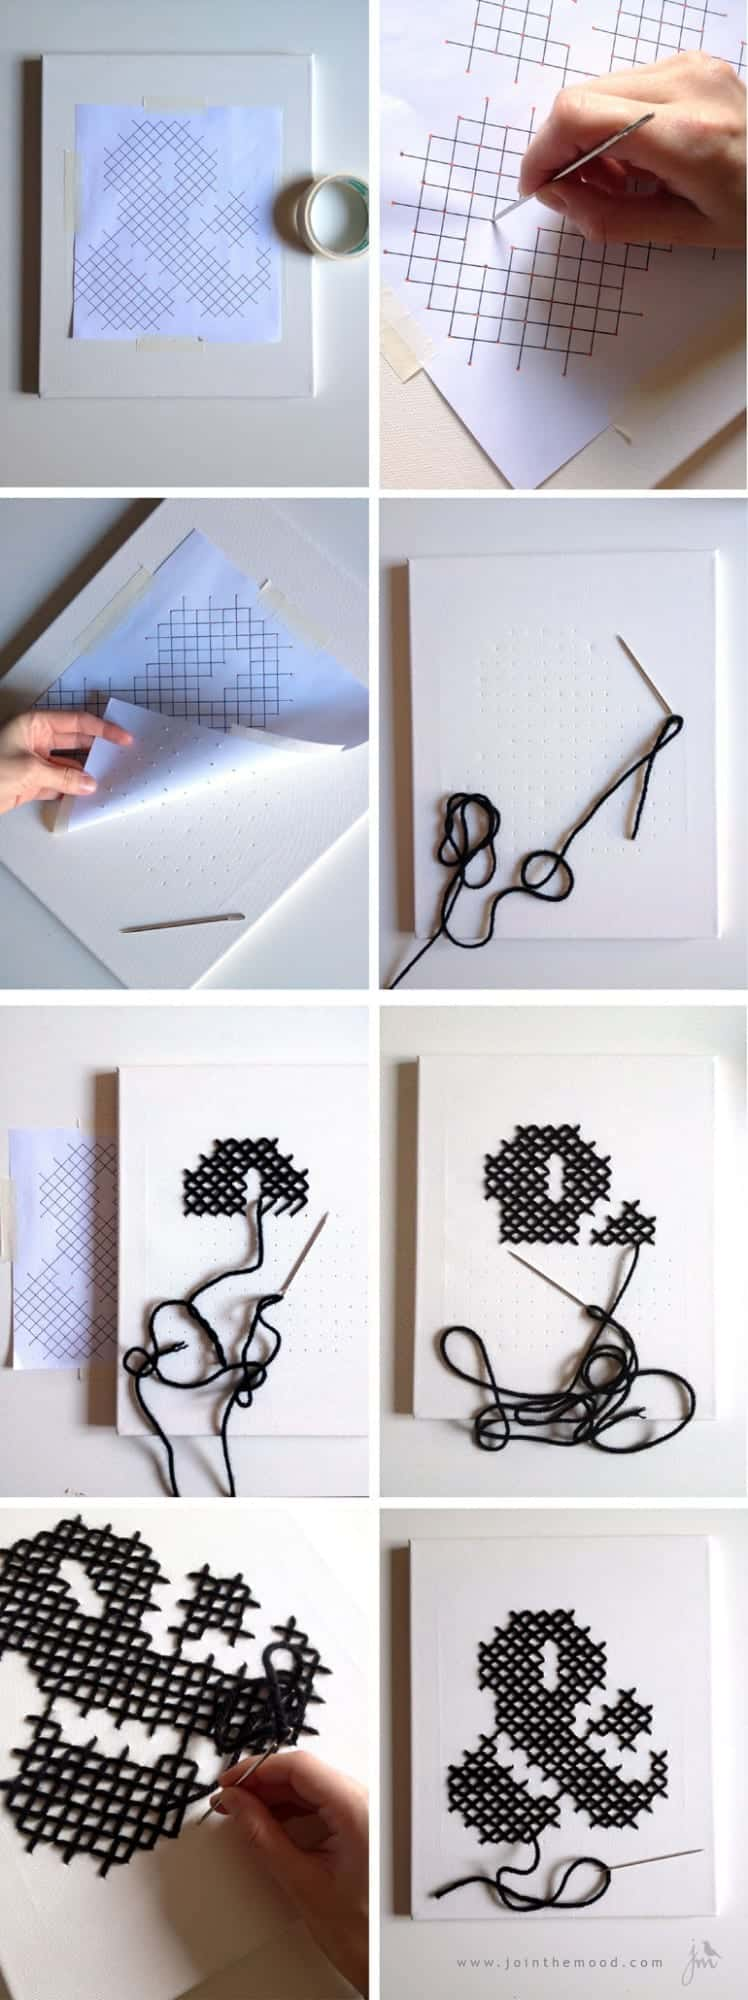 AMPERSAND-FRAME-IN-CROSS-STITCH-STEPS